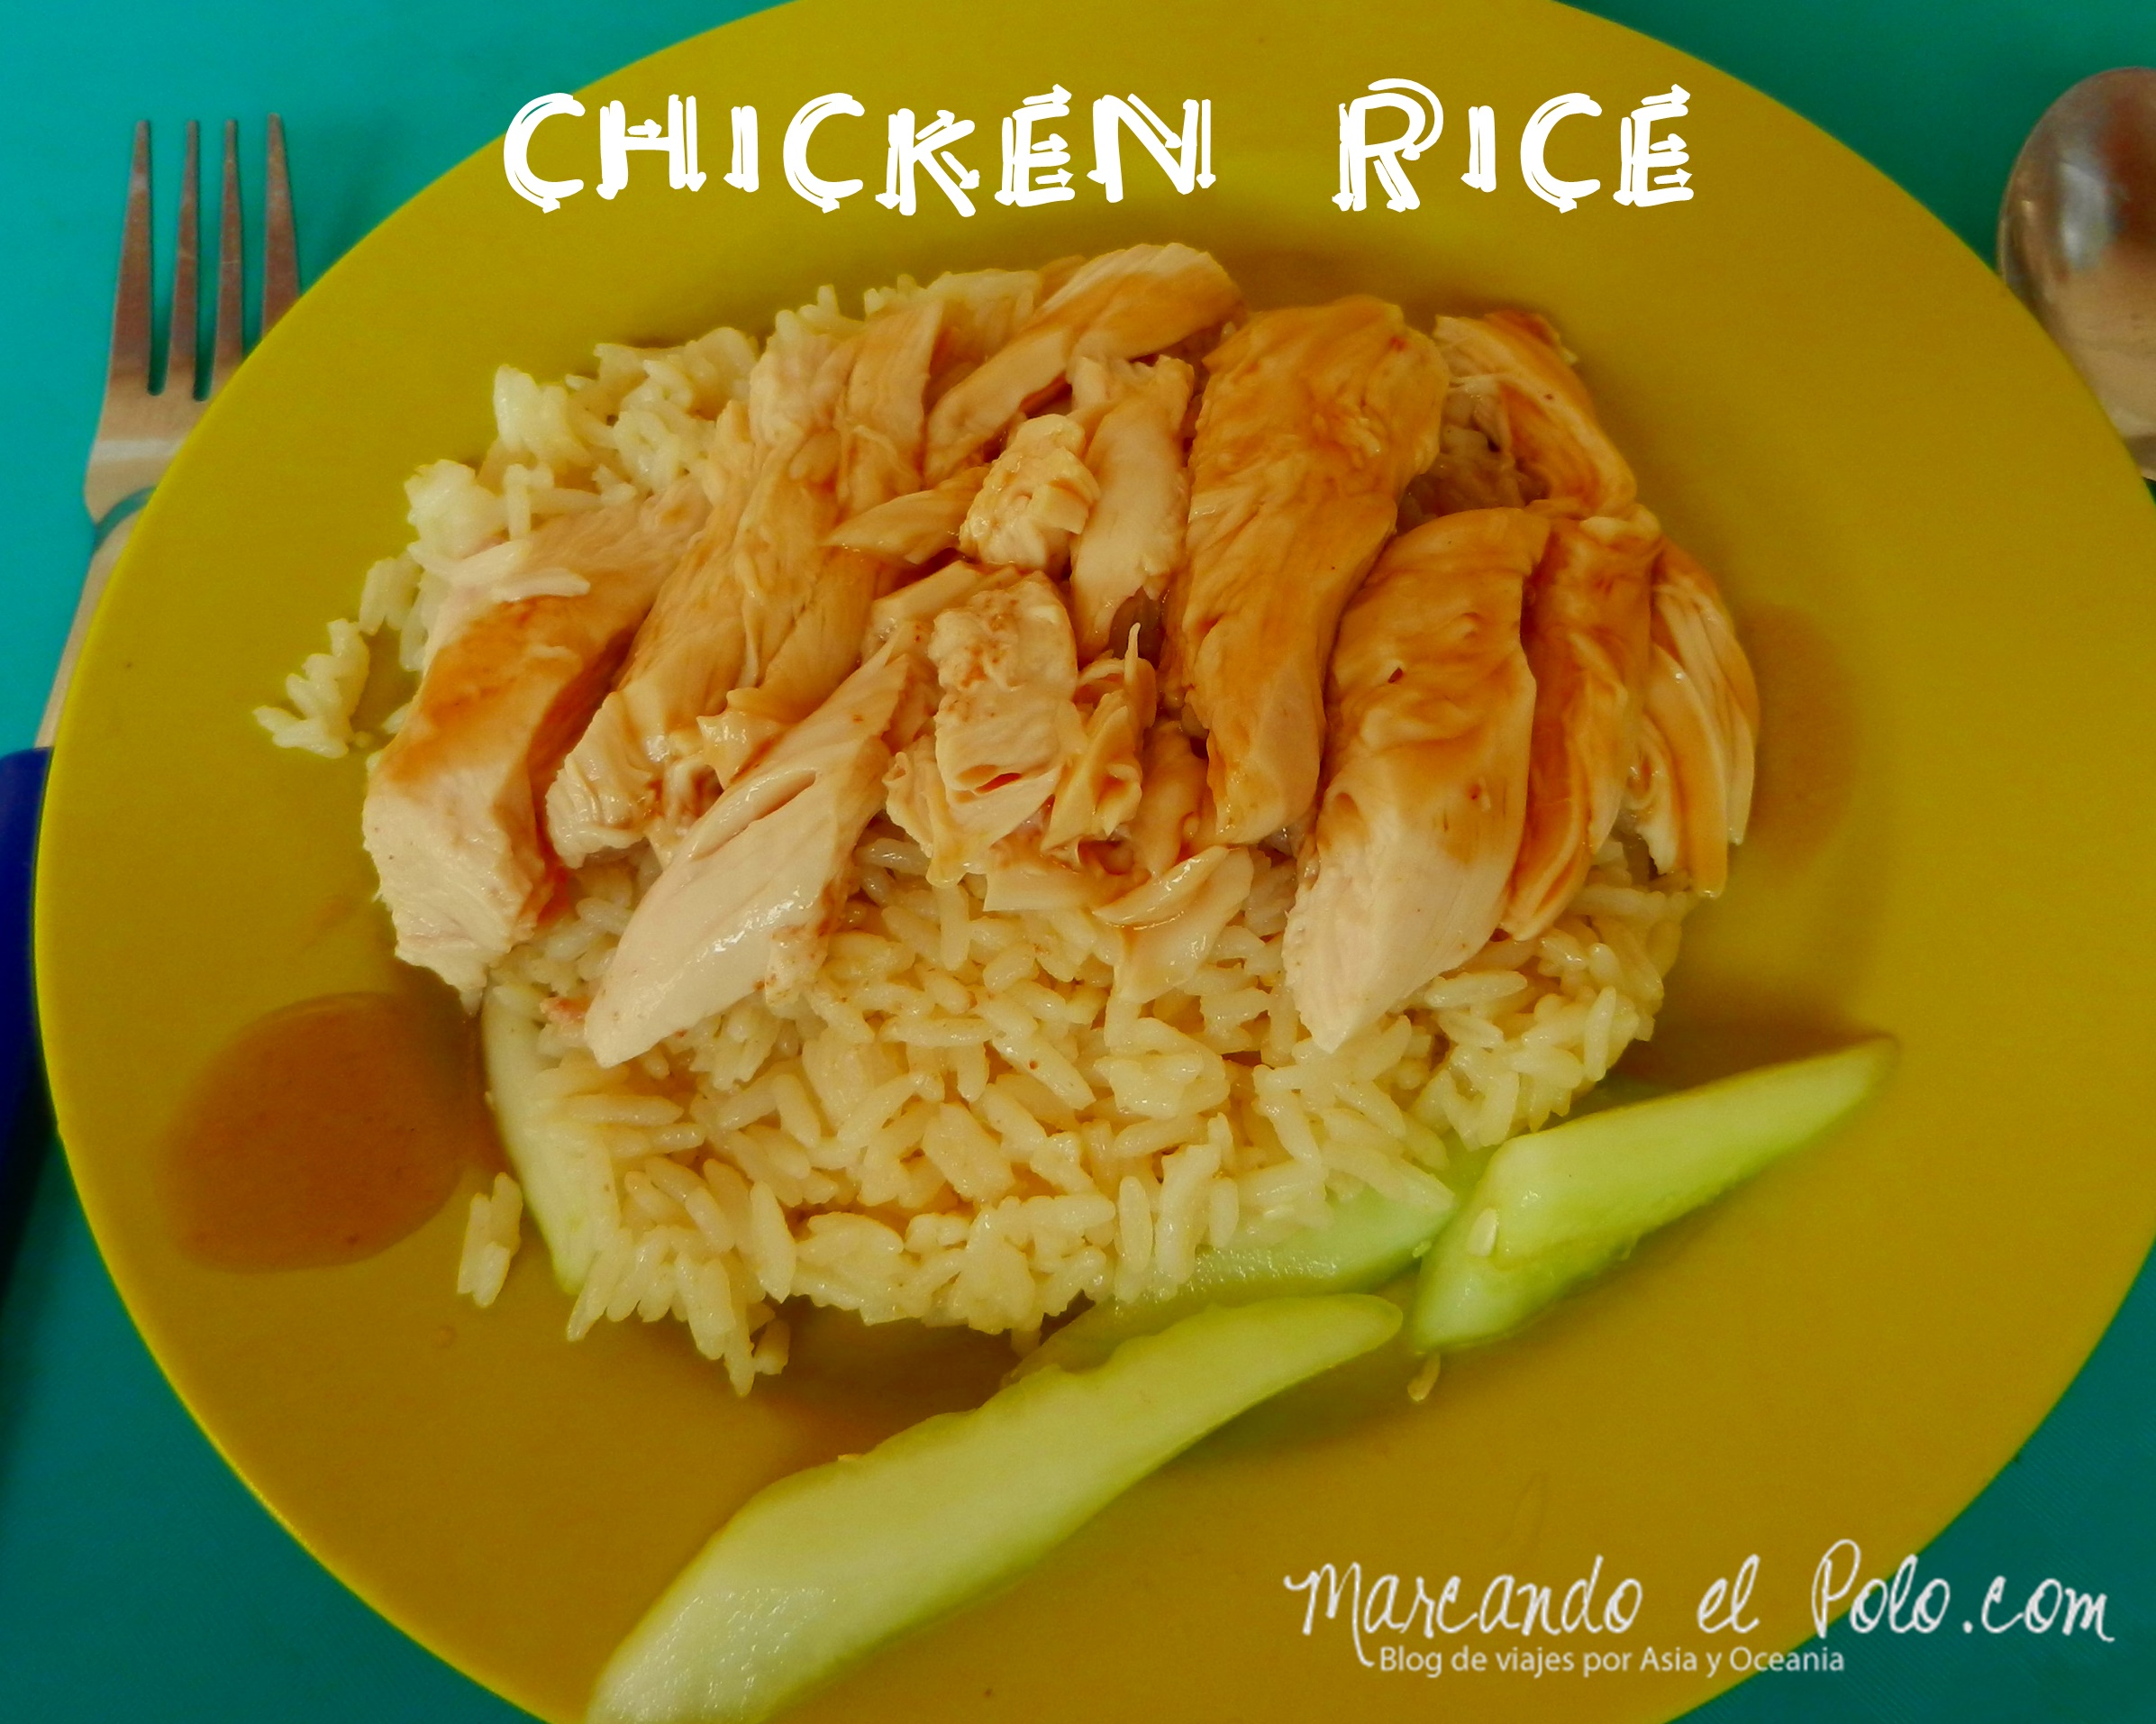 Chicken rice en Singapur